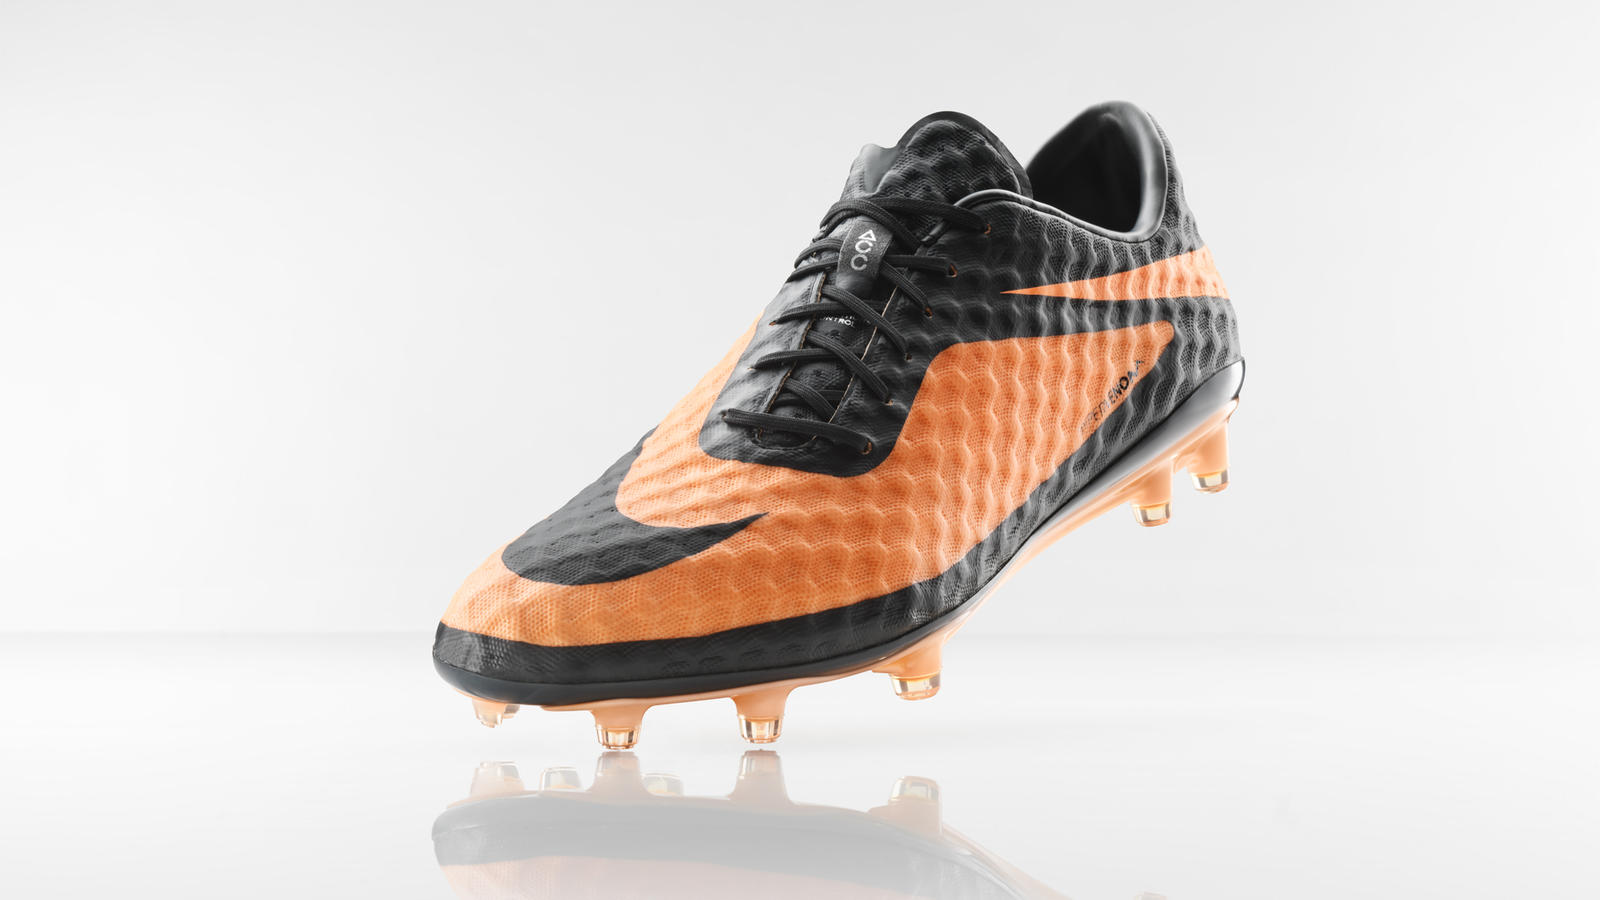 hot sale online f5736 fa4b7 Neymar is a New Breed of Attacker in Hypervenom Boots - Nike ...